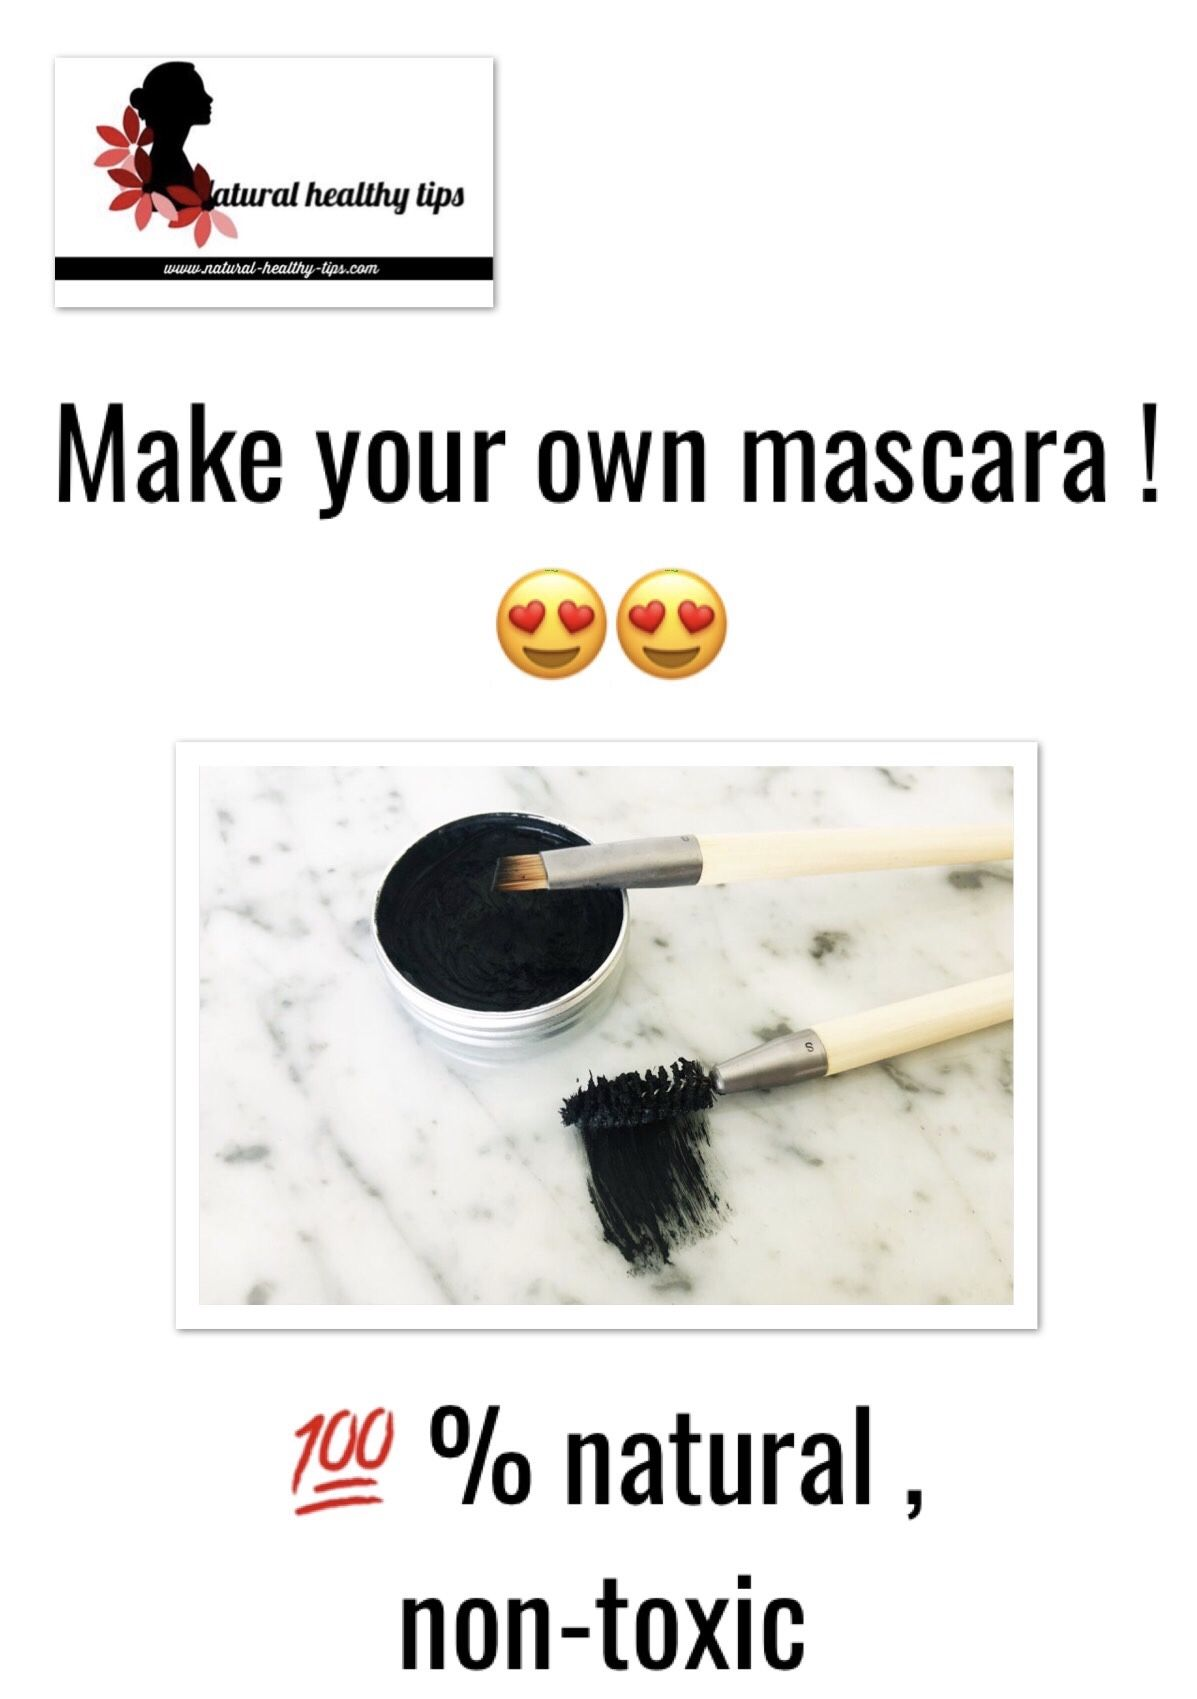 Make To Mascara Ways Homemade WaterproofUp Easy w8XOnk0P